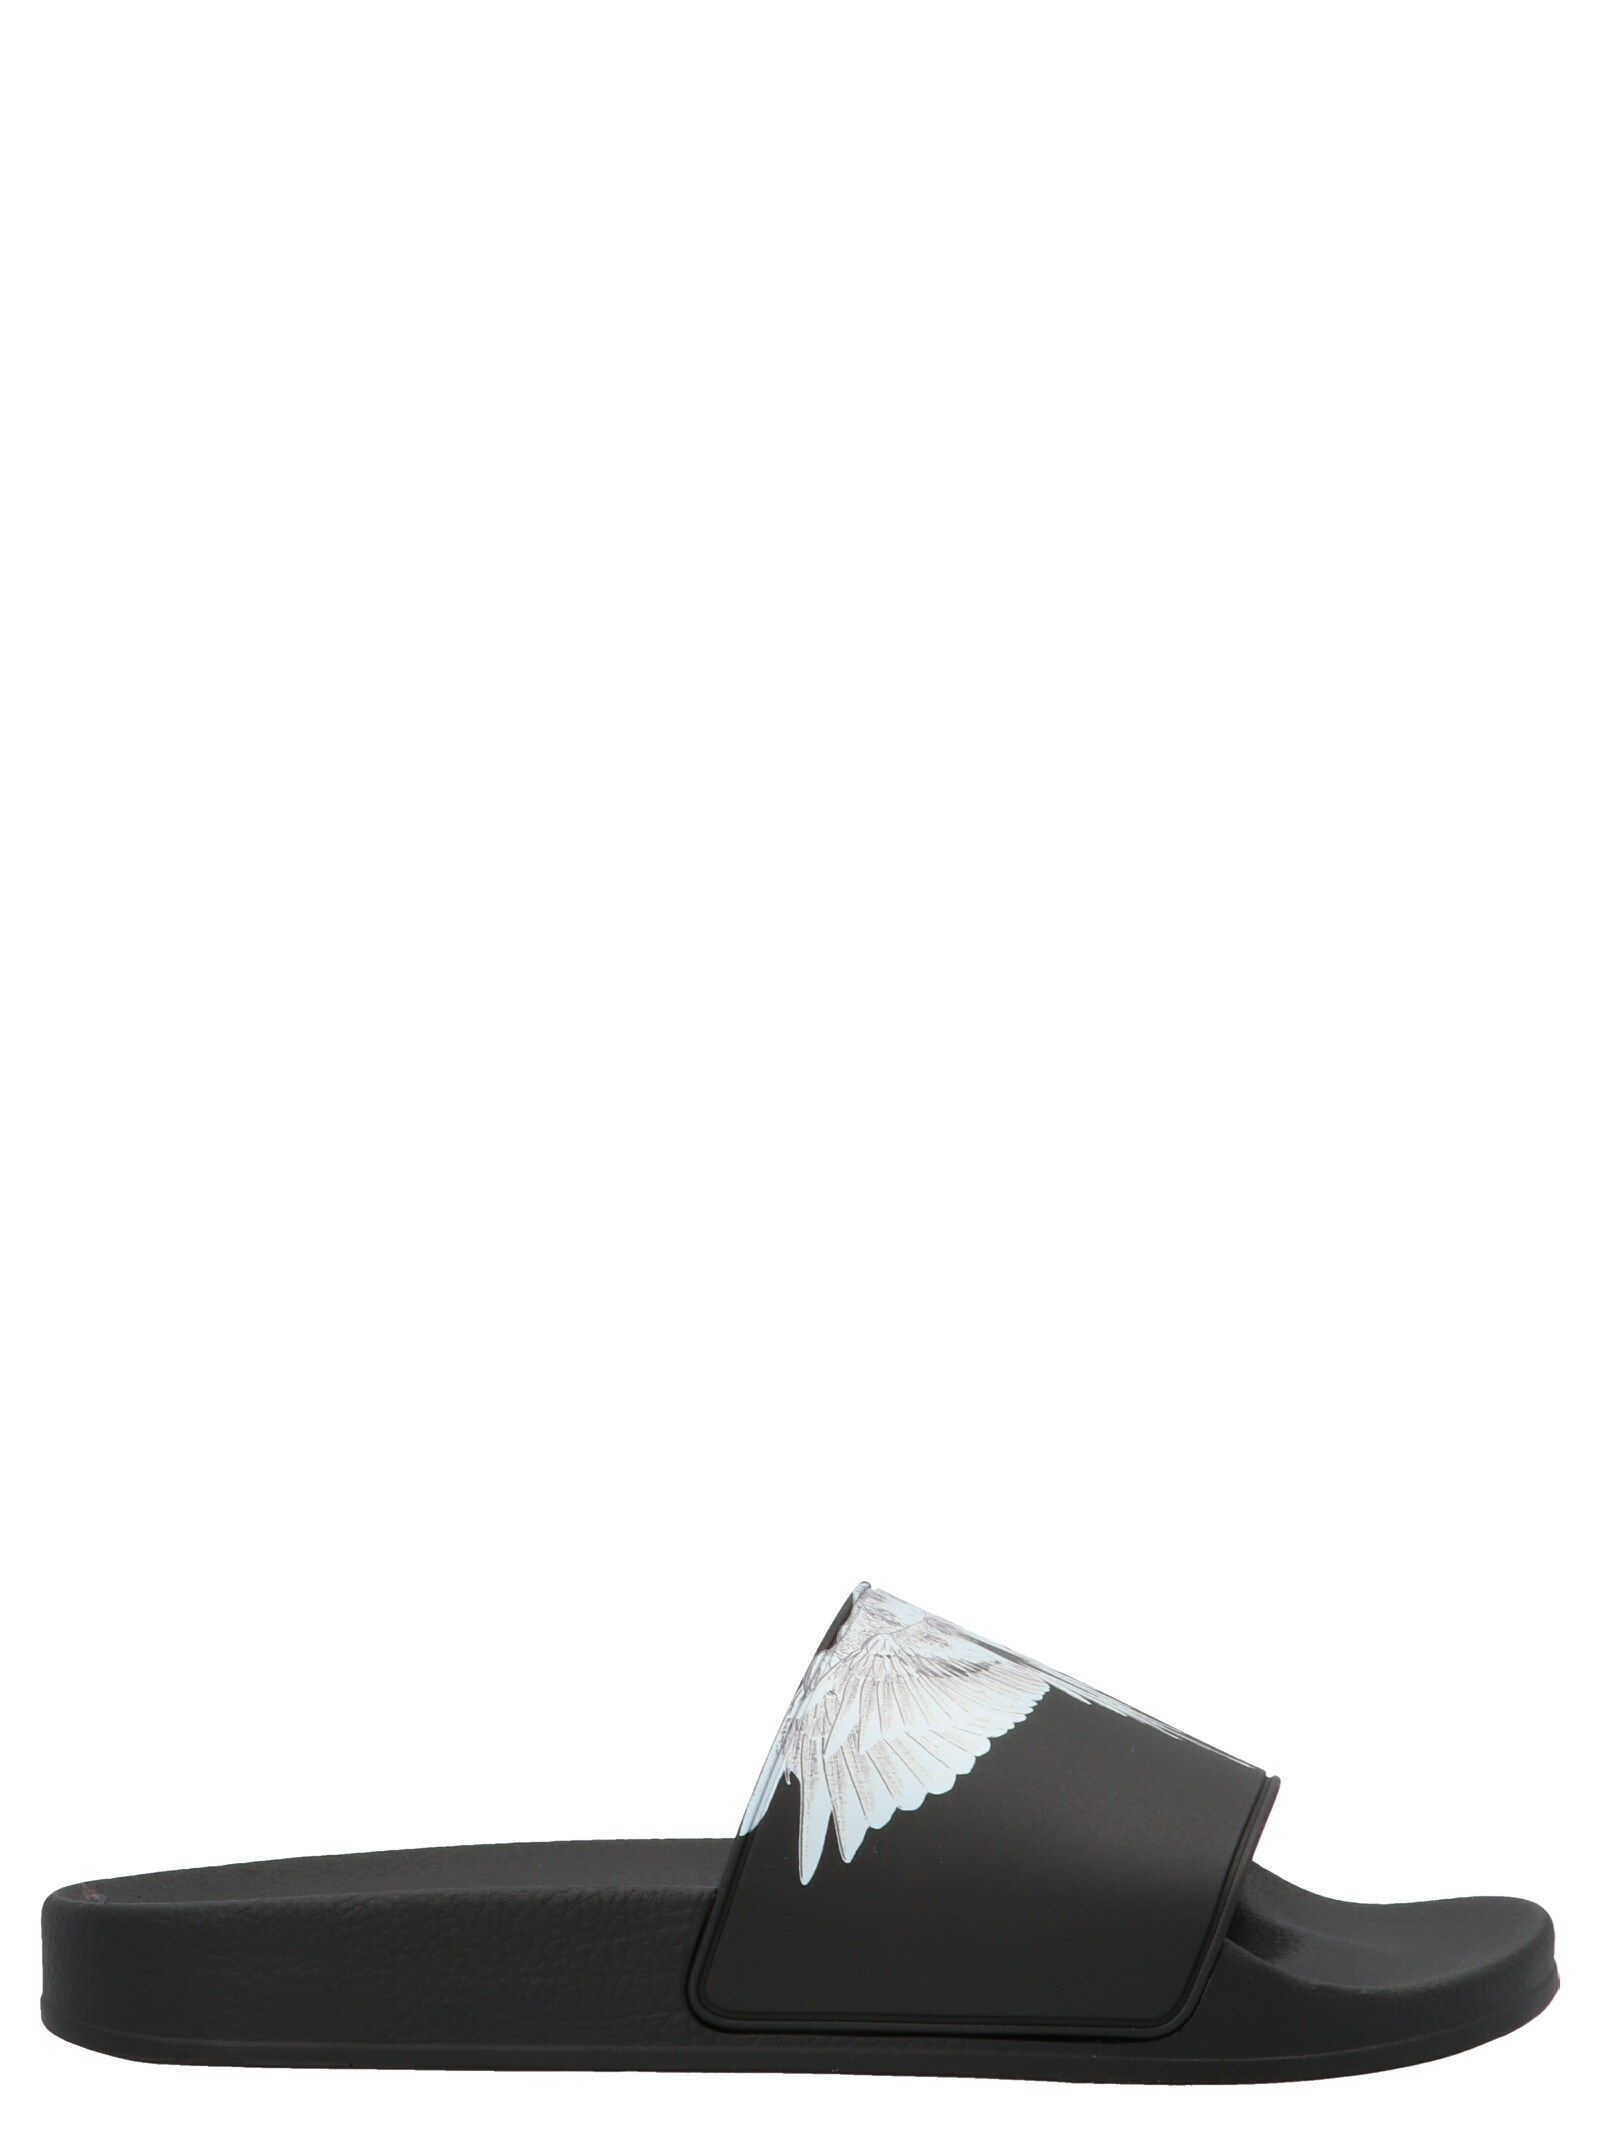 Marcelo Burlon County Of Milan MARCELO BURLON MEN'S BLACK OTHER MATERIALS SANDALS